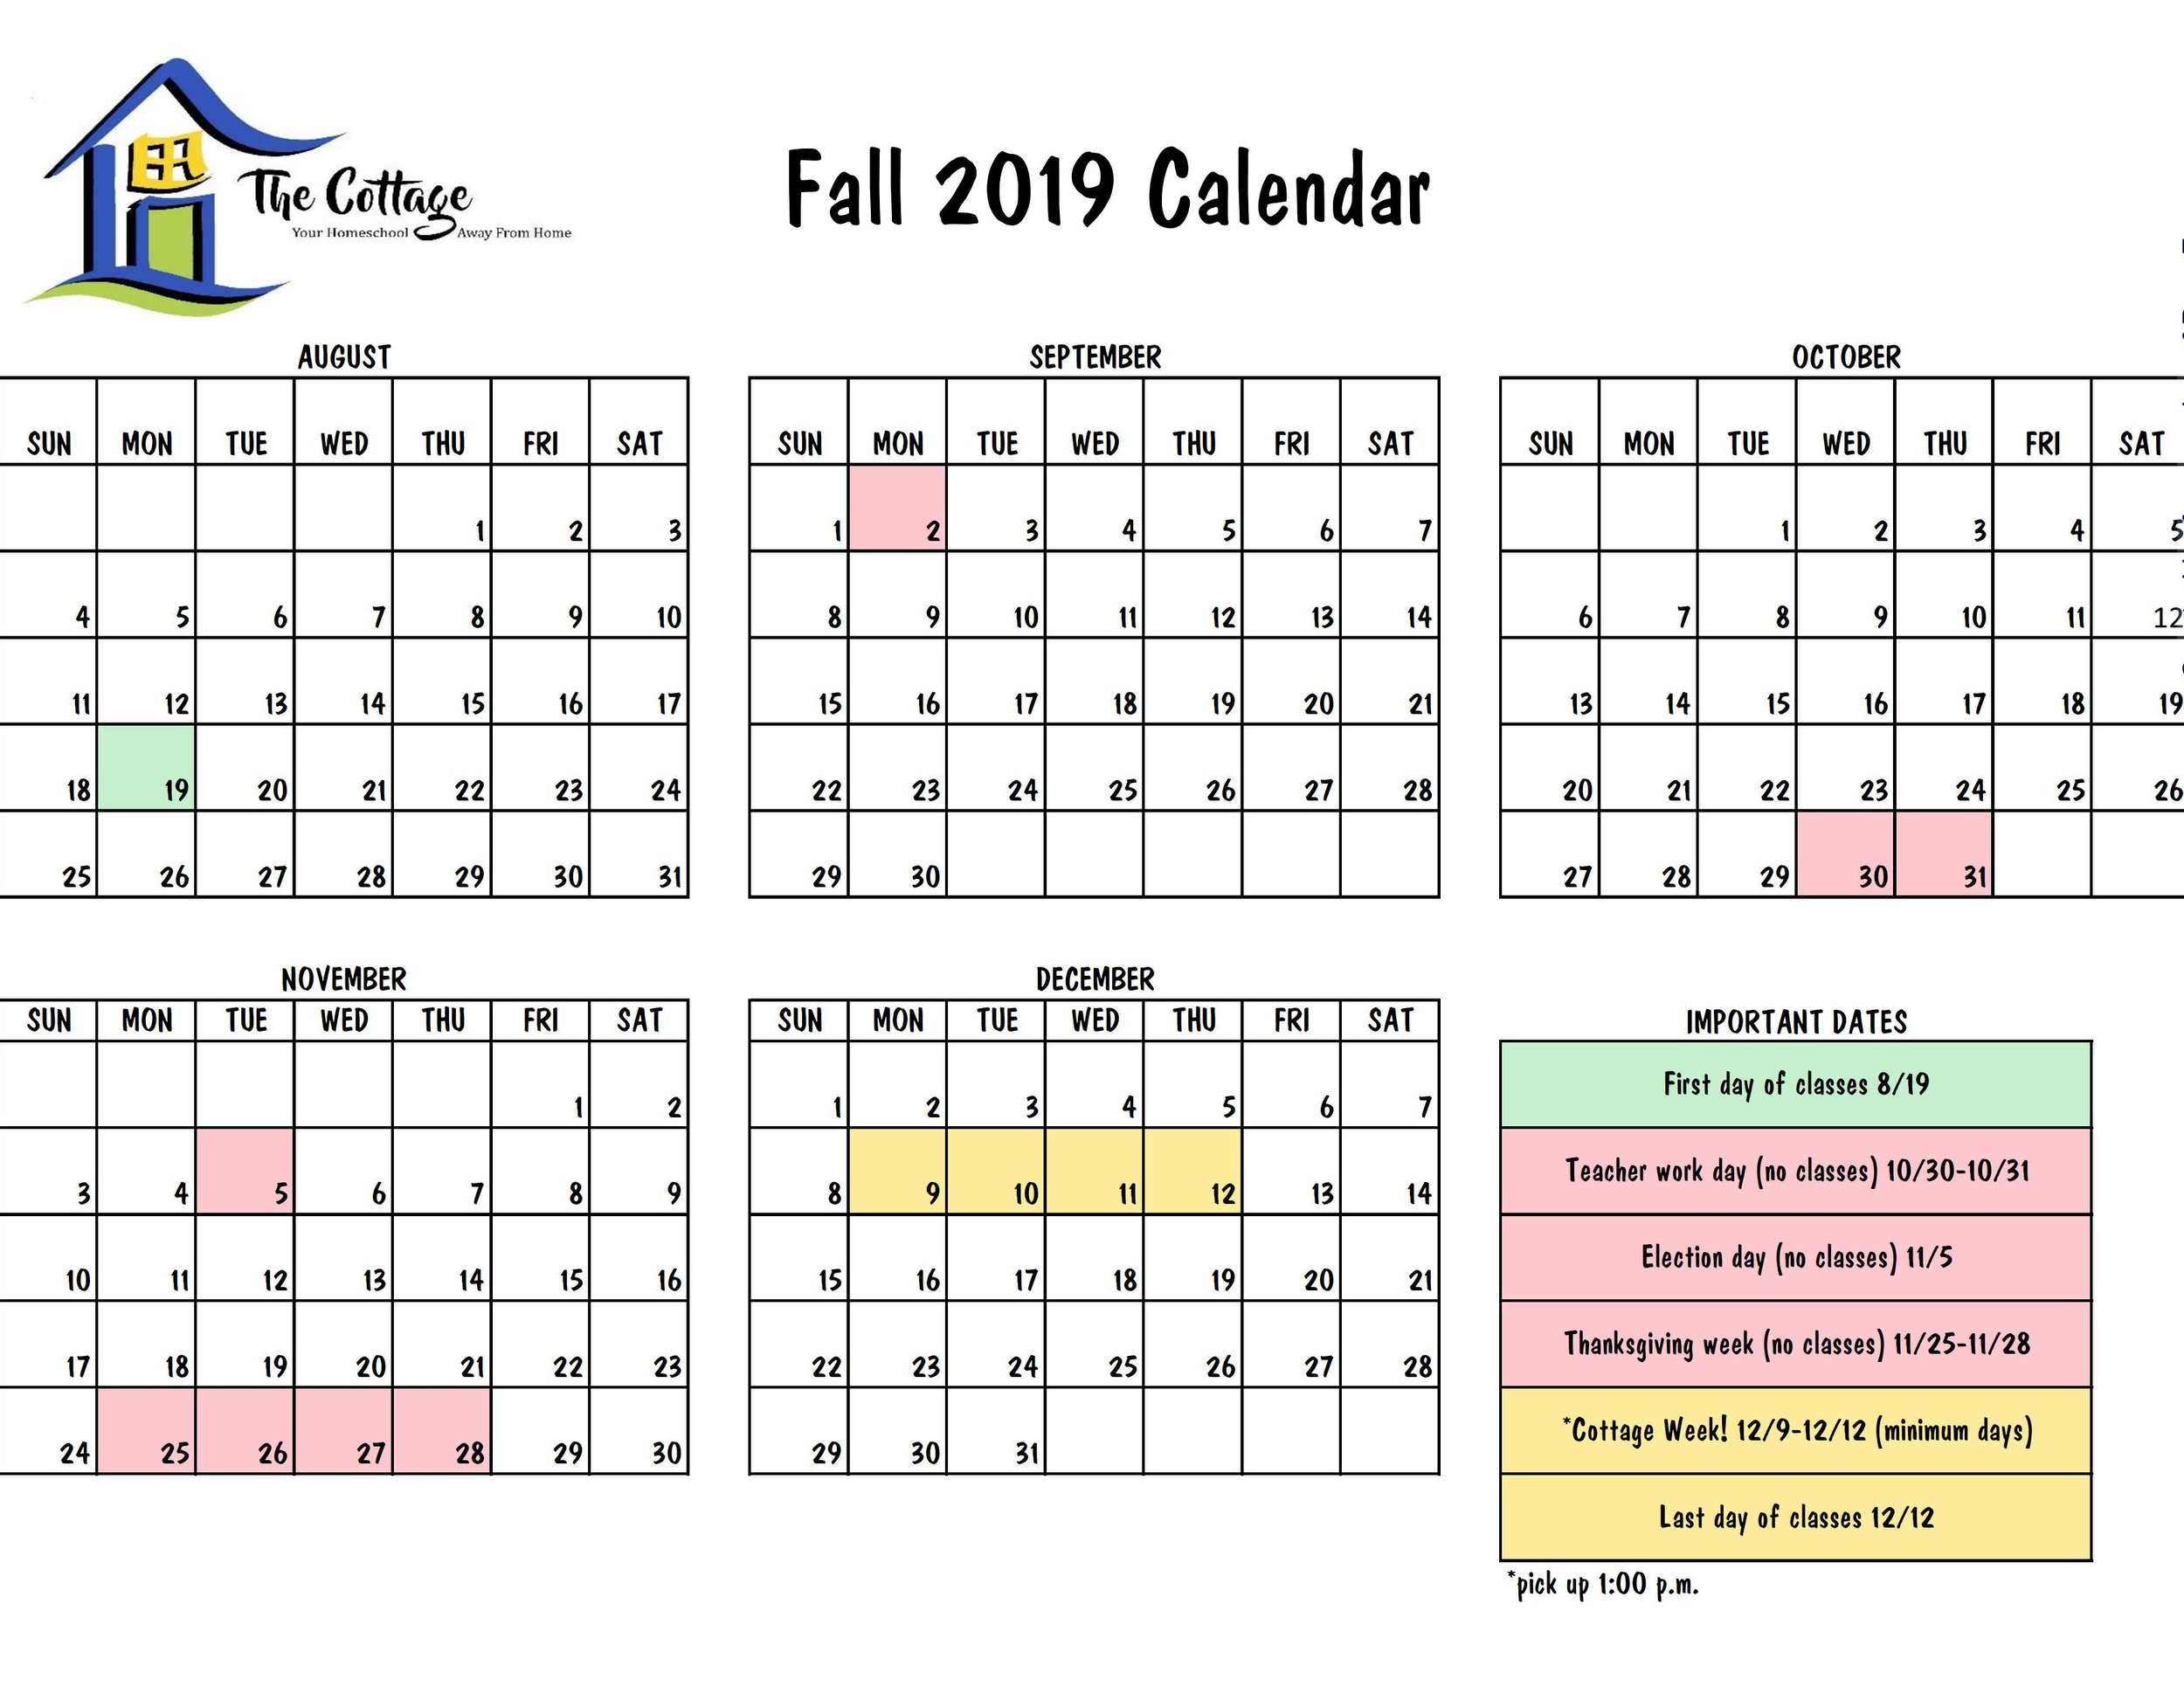 2019 Fall Calendar Fall 2019 Calendar — The Cottage